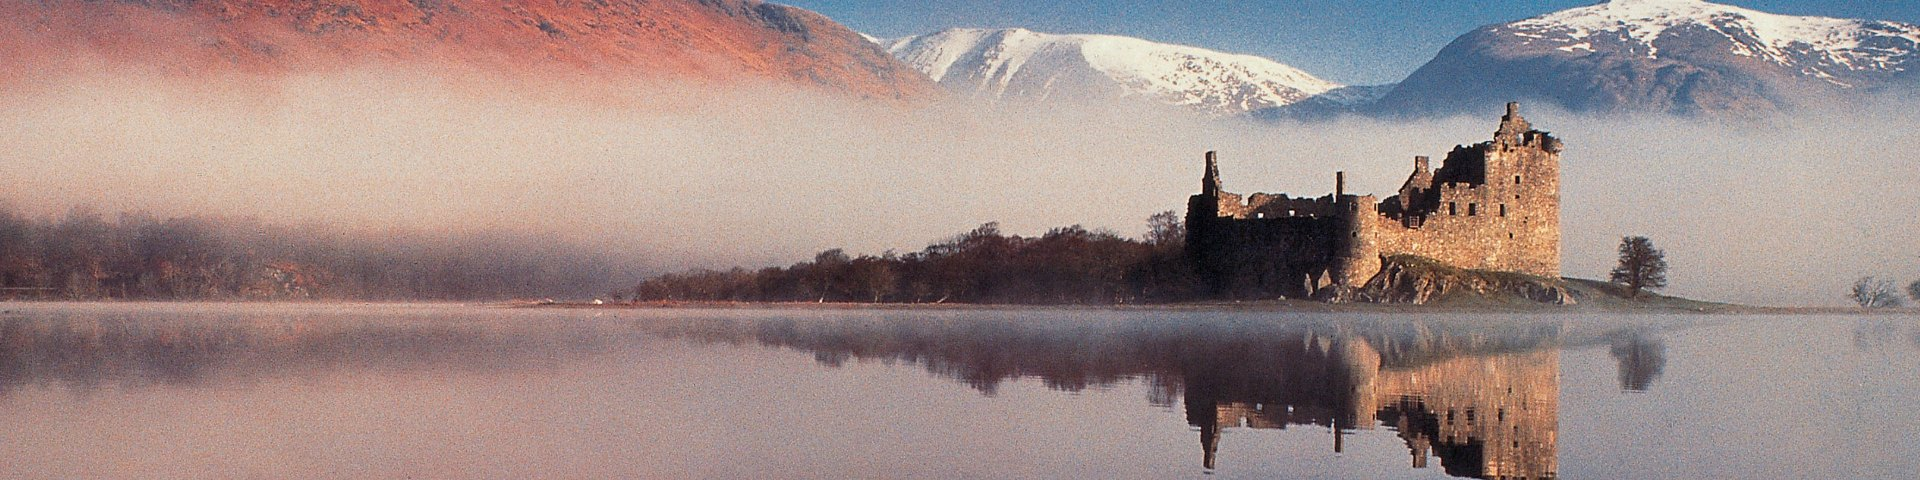 Kilchurn Castle by Loch Awe, Argyll in winter